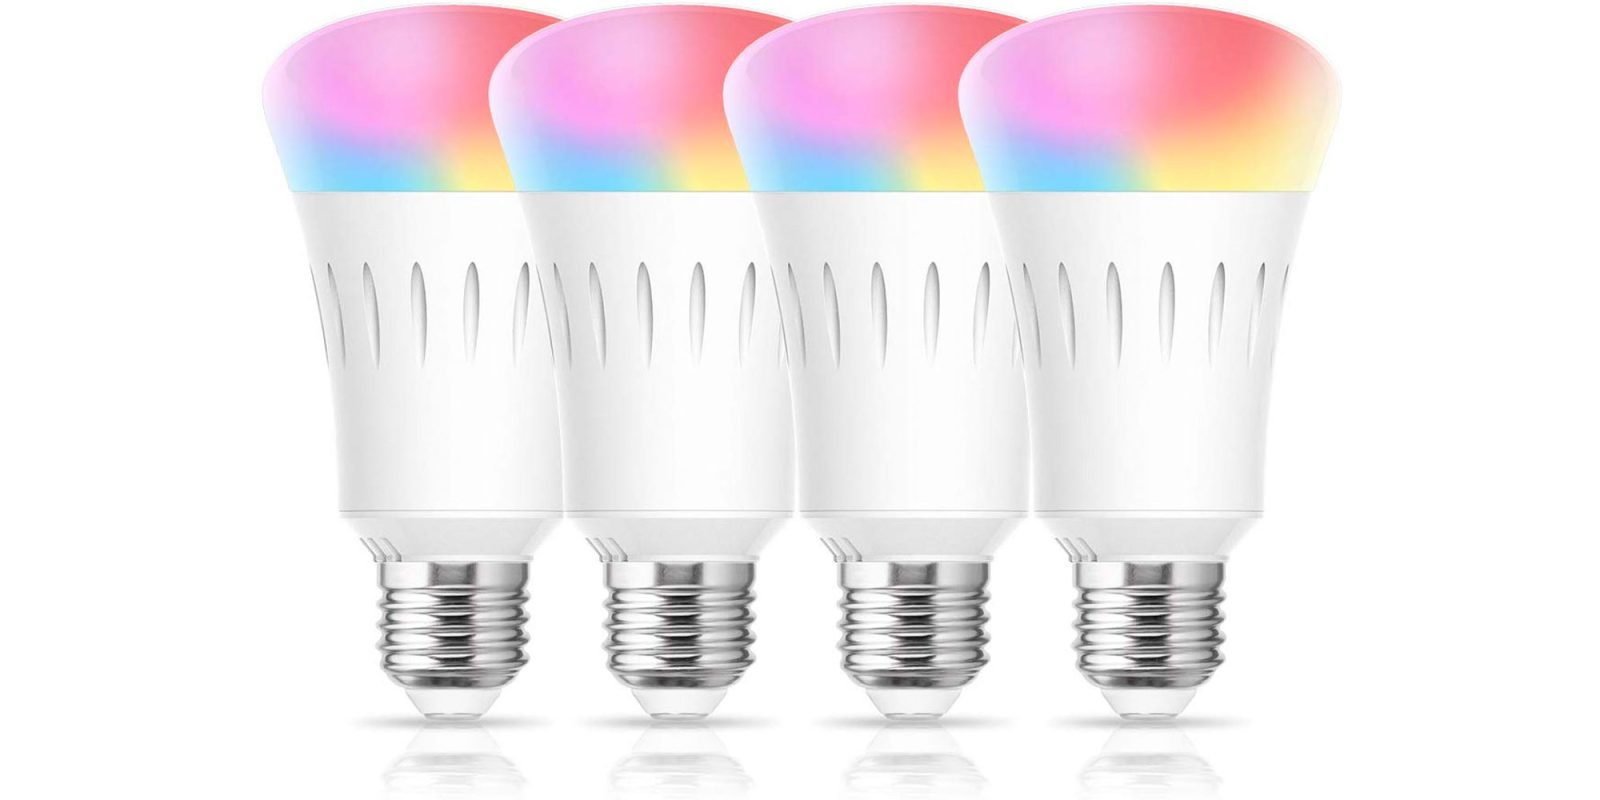 This 4 pack of RGB LED smart bulbs works with Alexa, Siri, + Assistant for $20